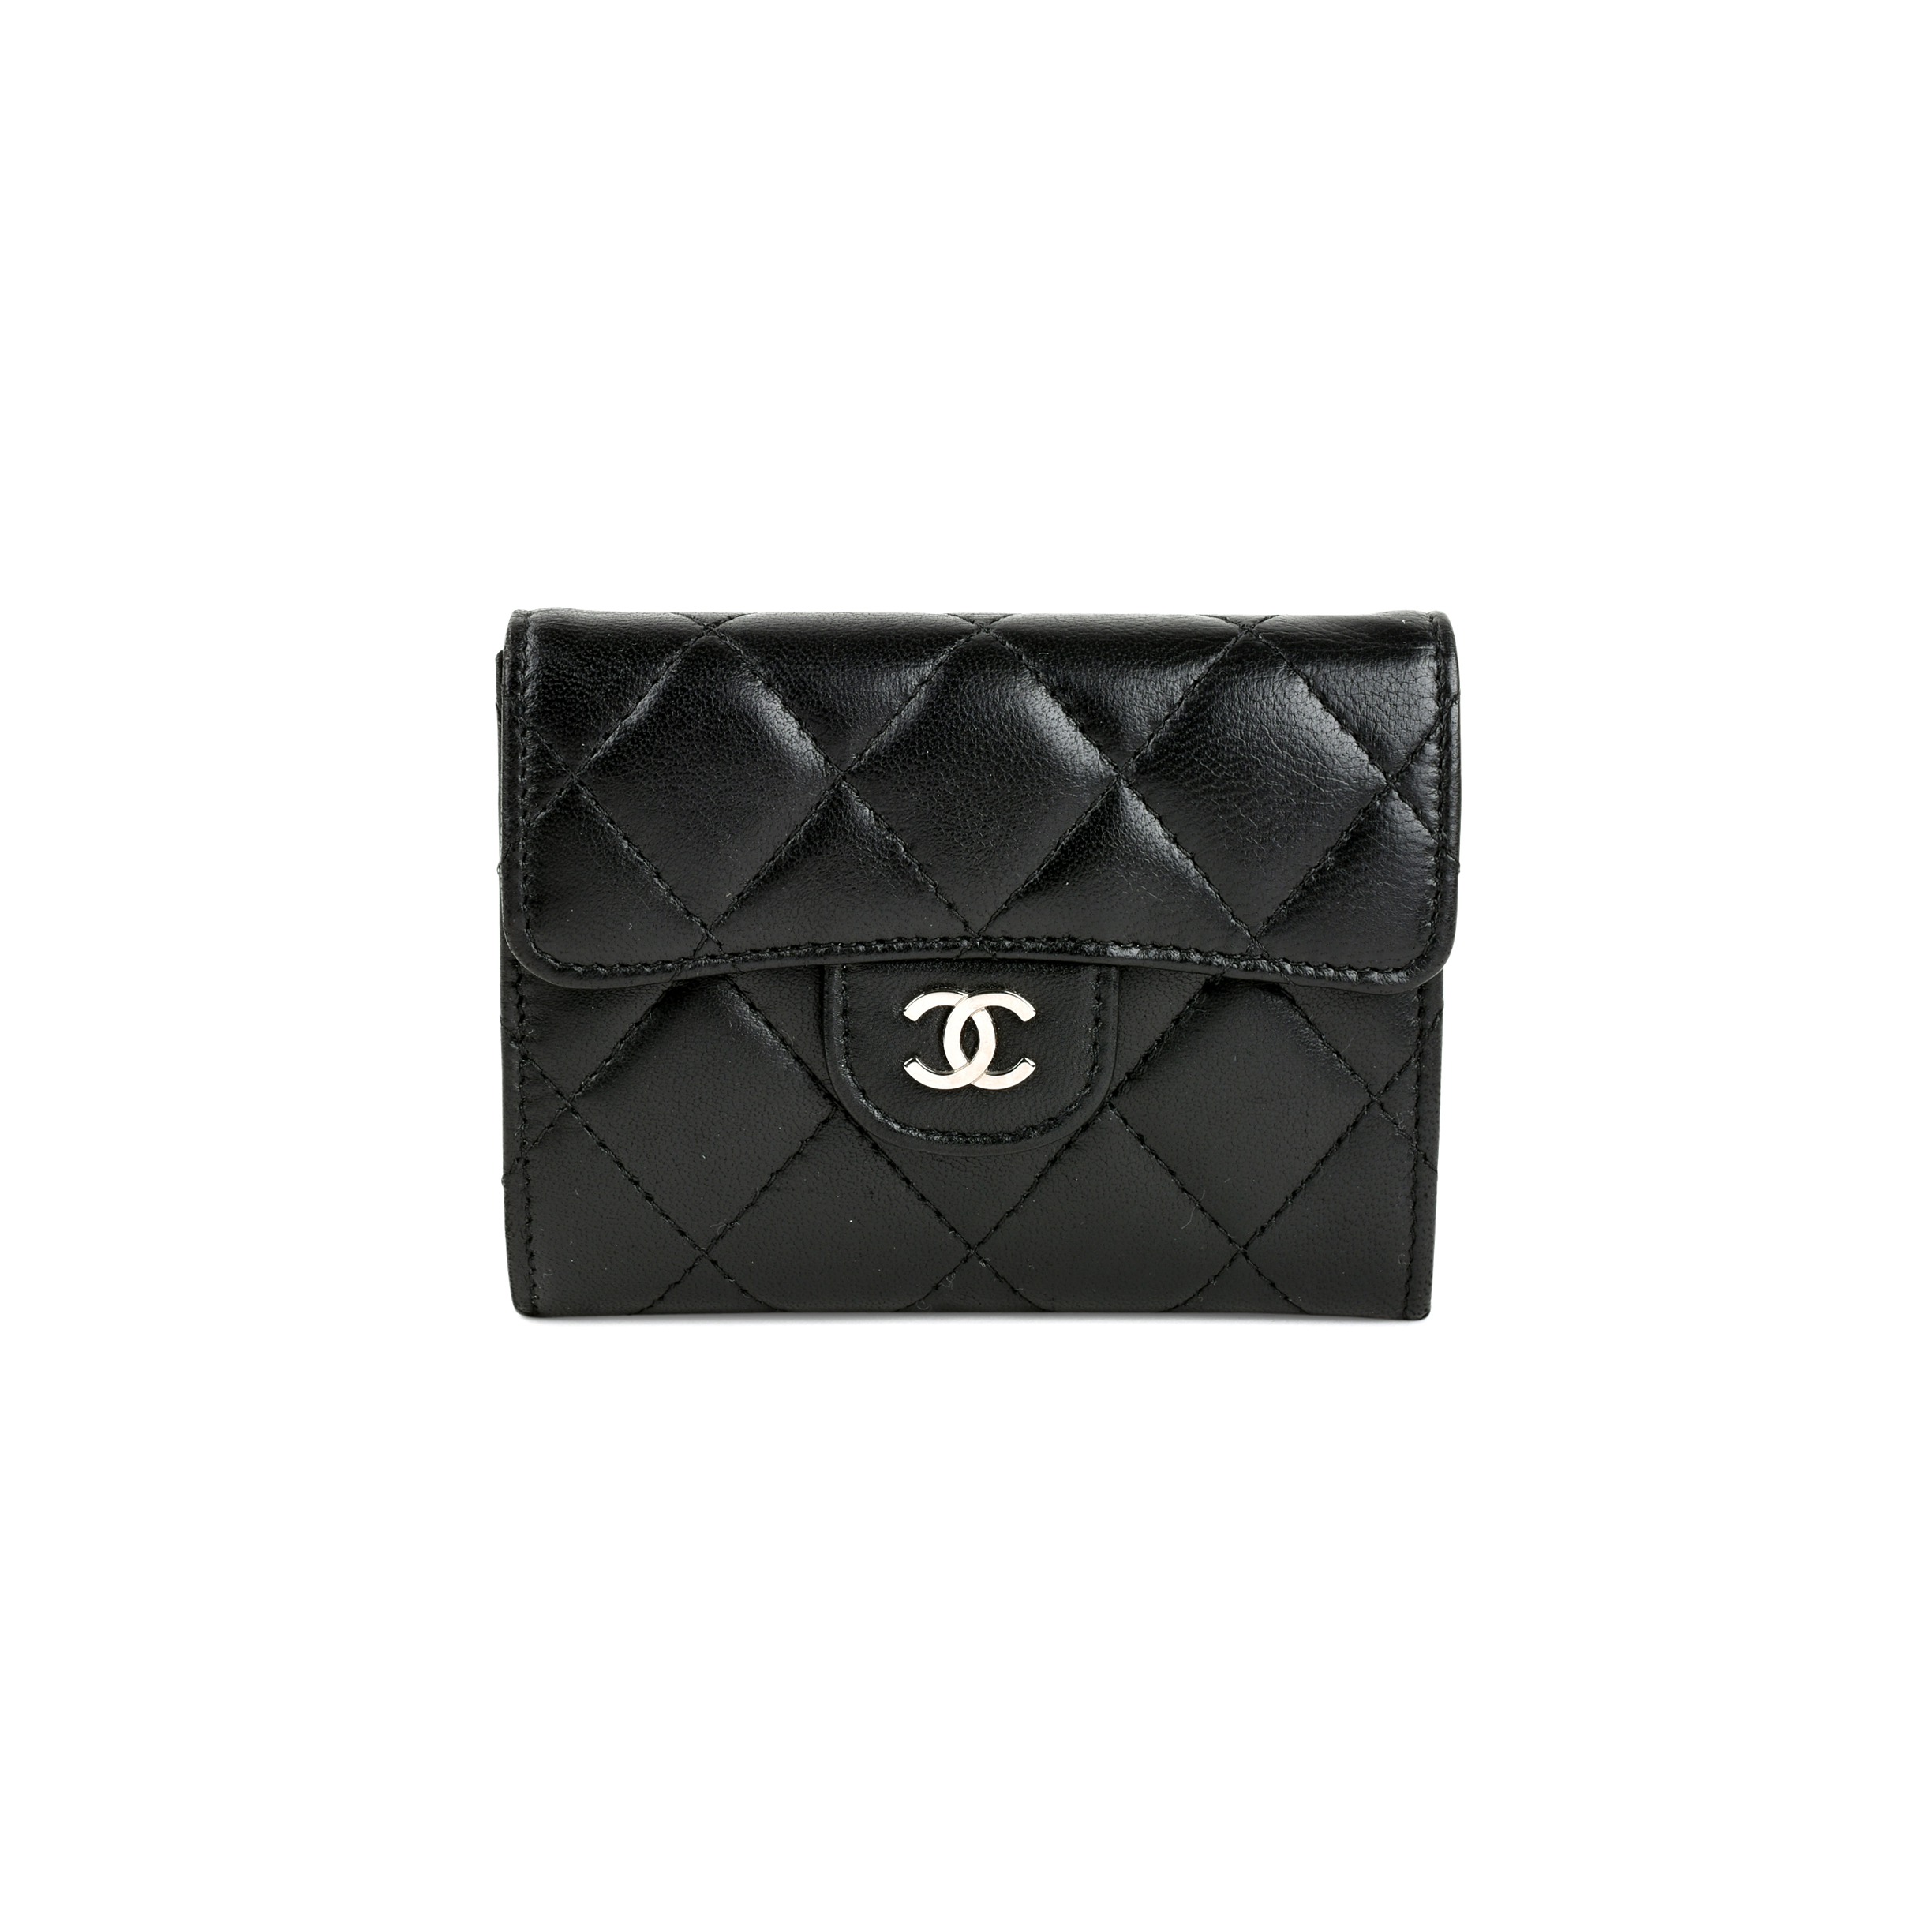 76f26b80da50 Authentic Second Hand Chanel Classic Coin Purse (PSS-240-00214) | THE FIFTH  COLLECTION